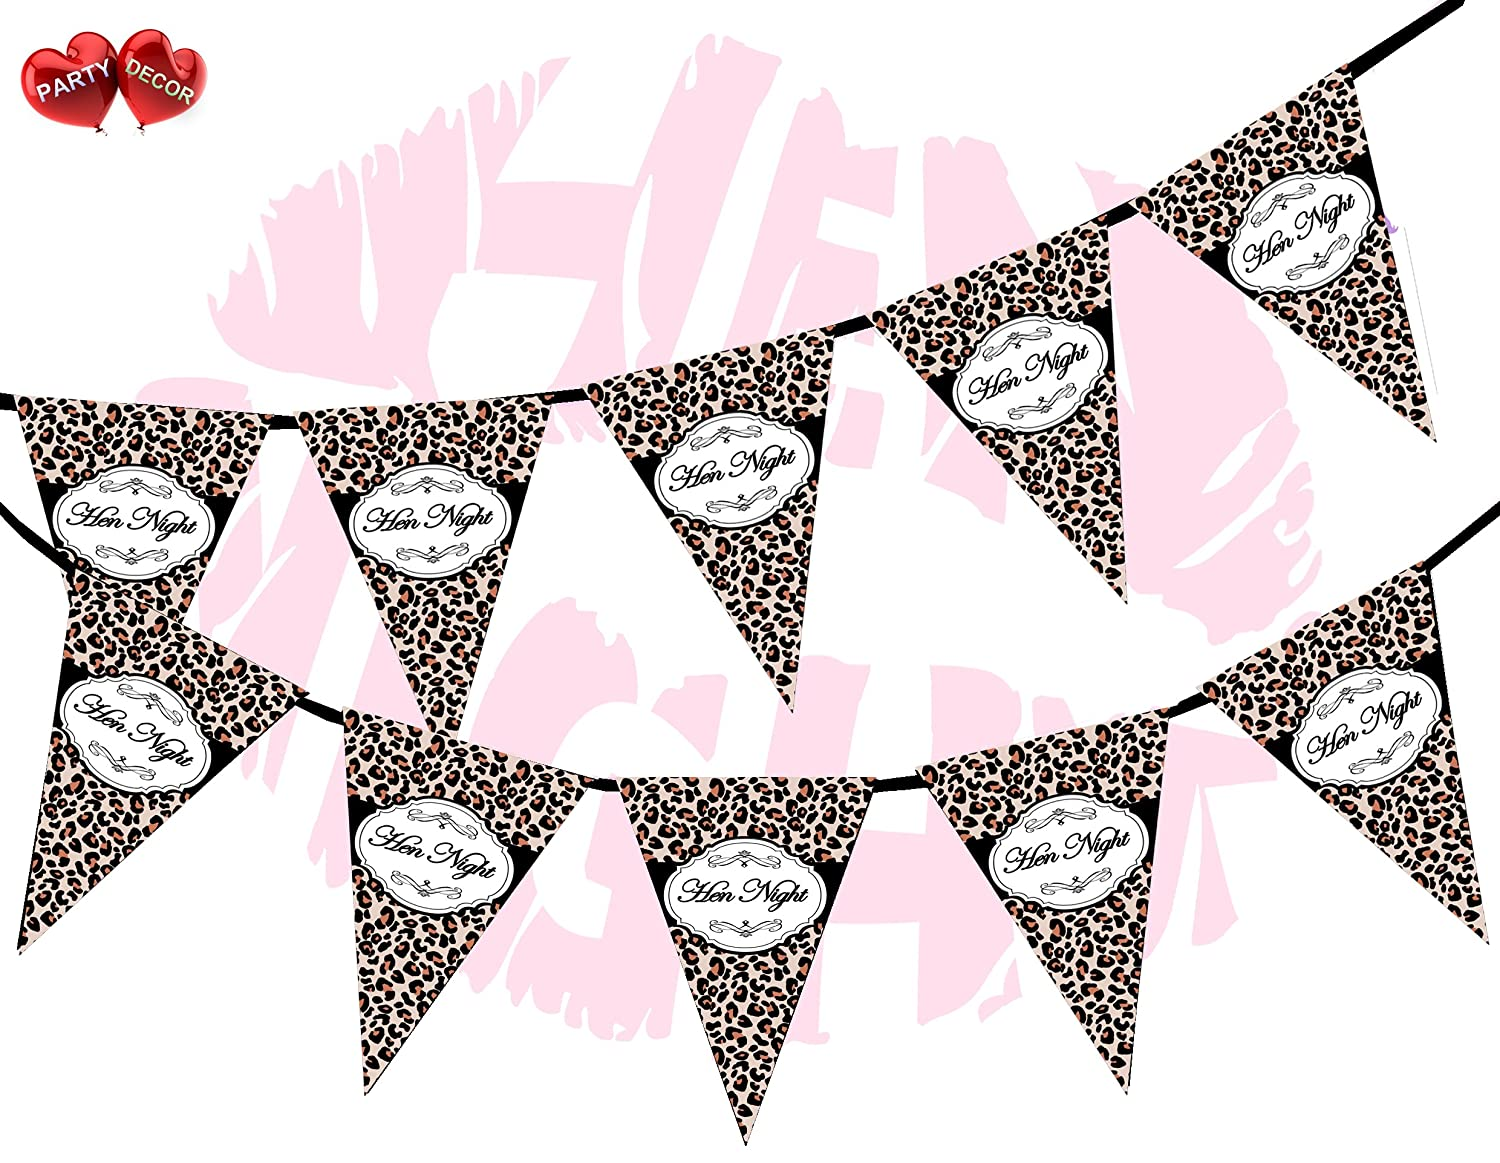 Hen Night Sign Leopard Print Royal Luxury Themed Bunting Banner 15 flags for guaranteed simply stylish party decoration by PARTY DECOR